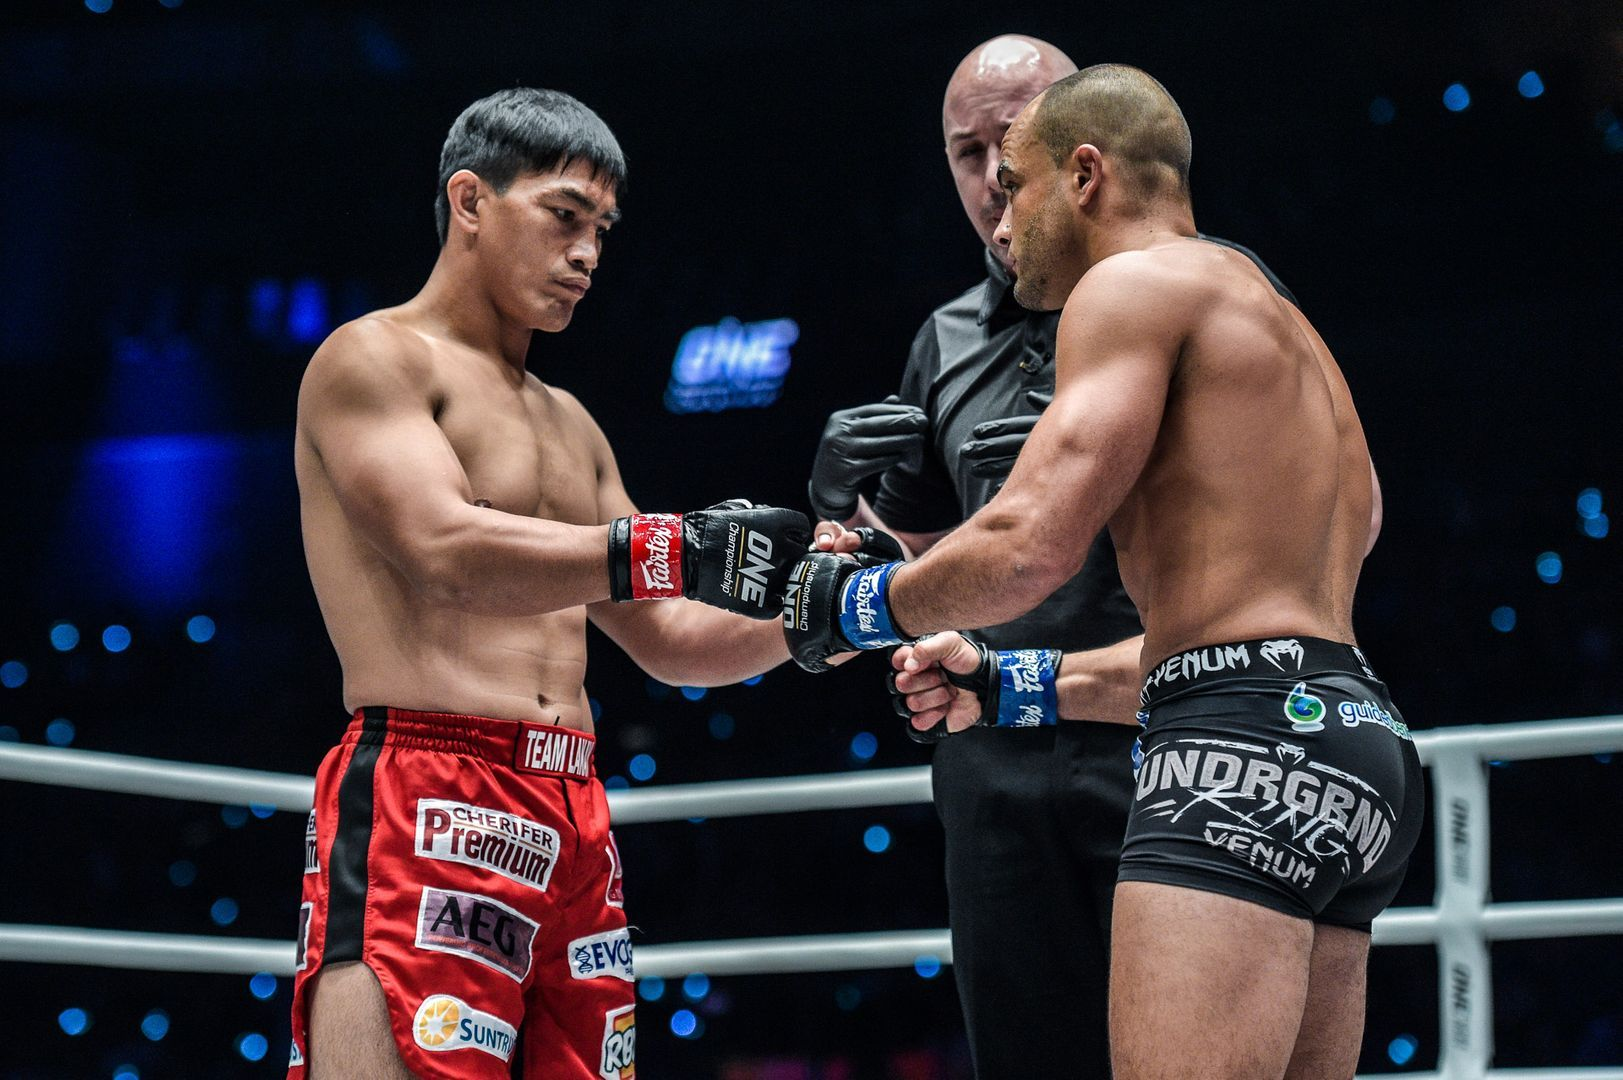 Filipino hero Eduard Folayang and American mixed martial arts legend Eddie Alvarez show respect before their battle